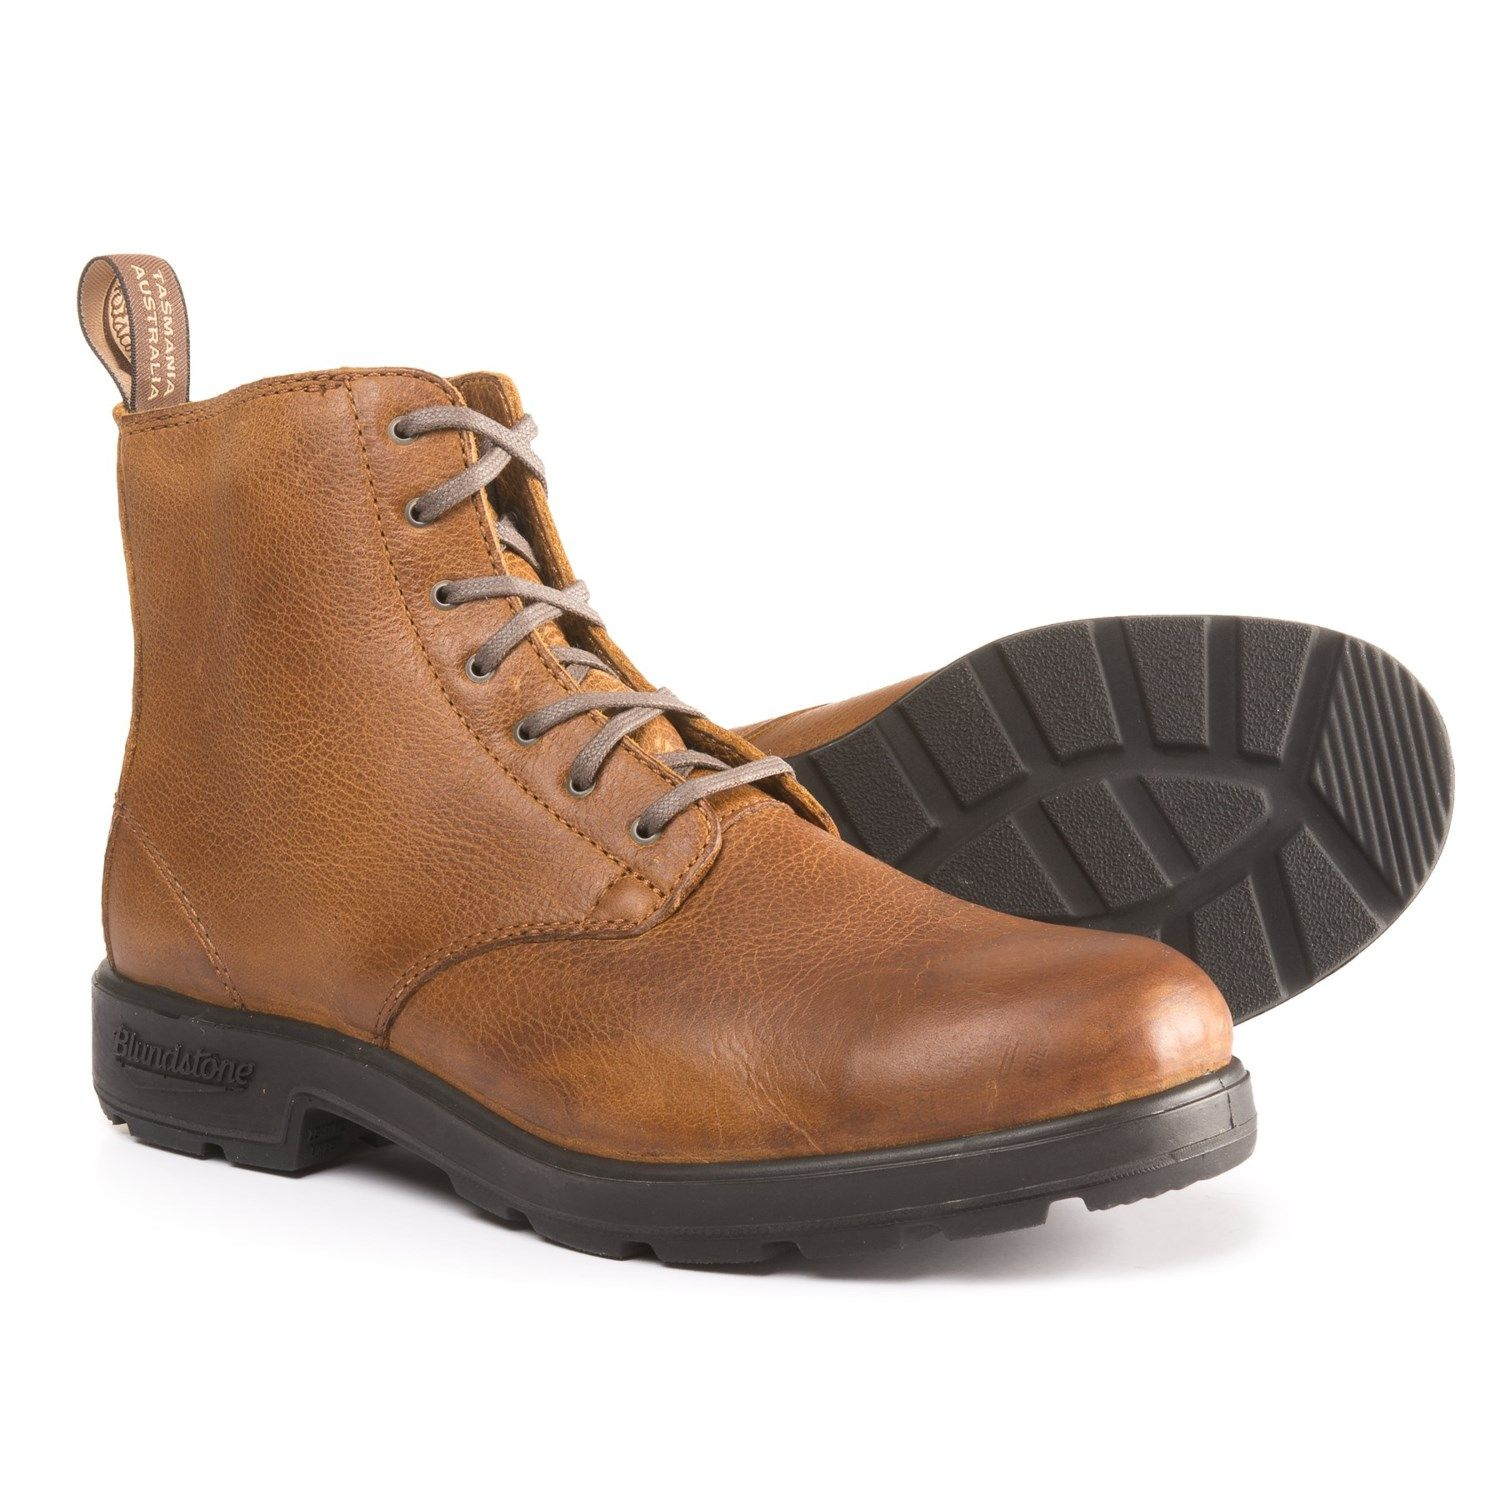 9748670f78629 Blundstone Lace-Up Boots (For Men) in Tan Tumbled, Brown Tumbled at Sierra  Trading Post. Celebrating 30 Years Of Exploring.